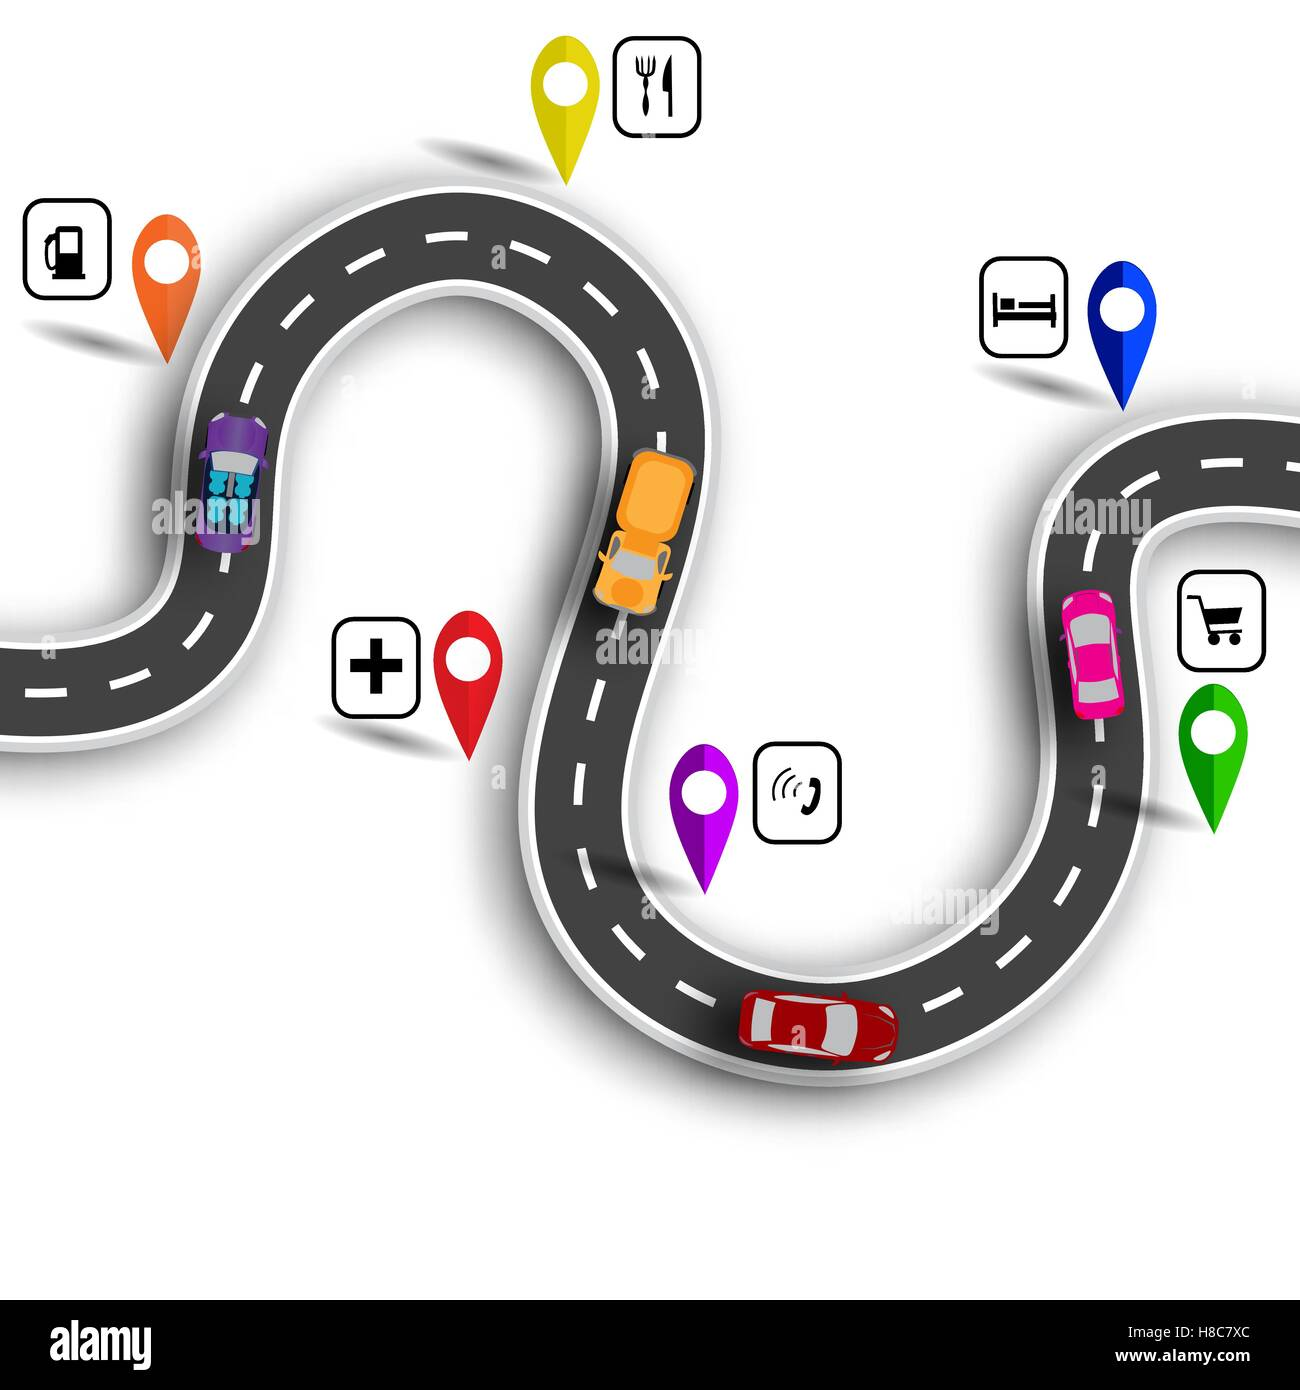 Infographic. Winding road with signs. 3D. Cars. The path indicated by the navigator. illustration - Stock Image